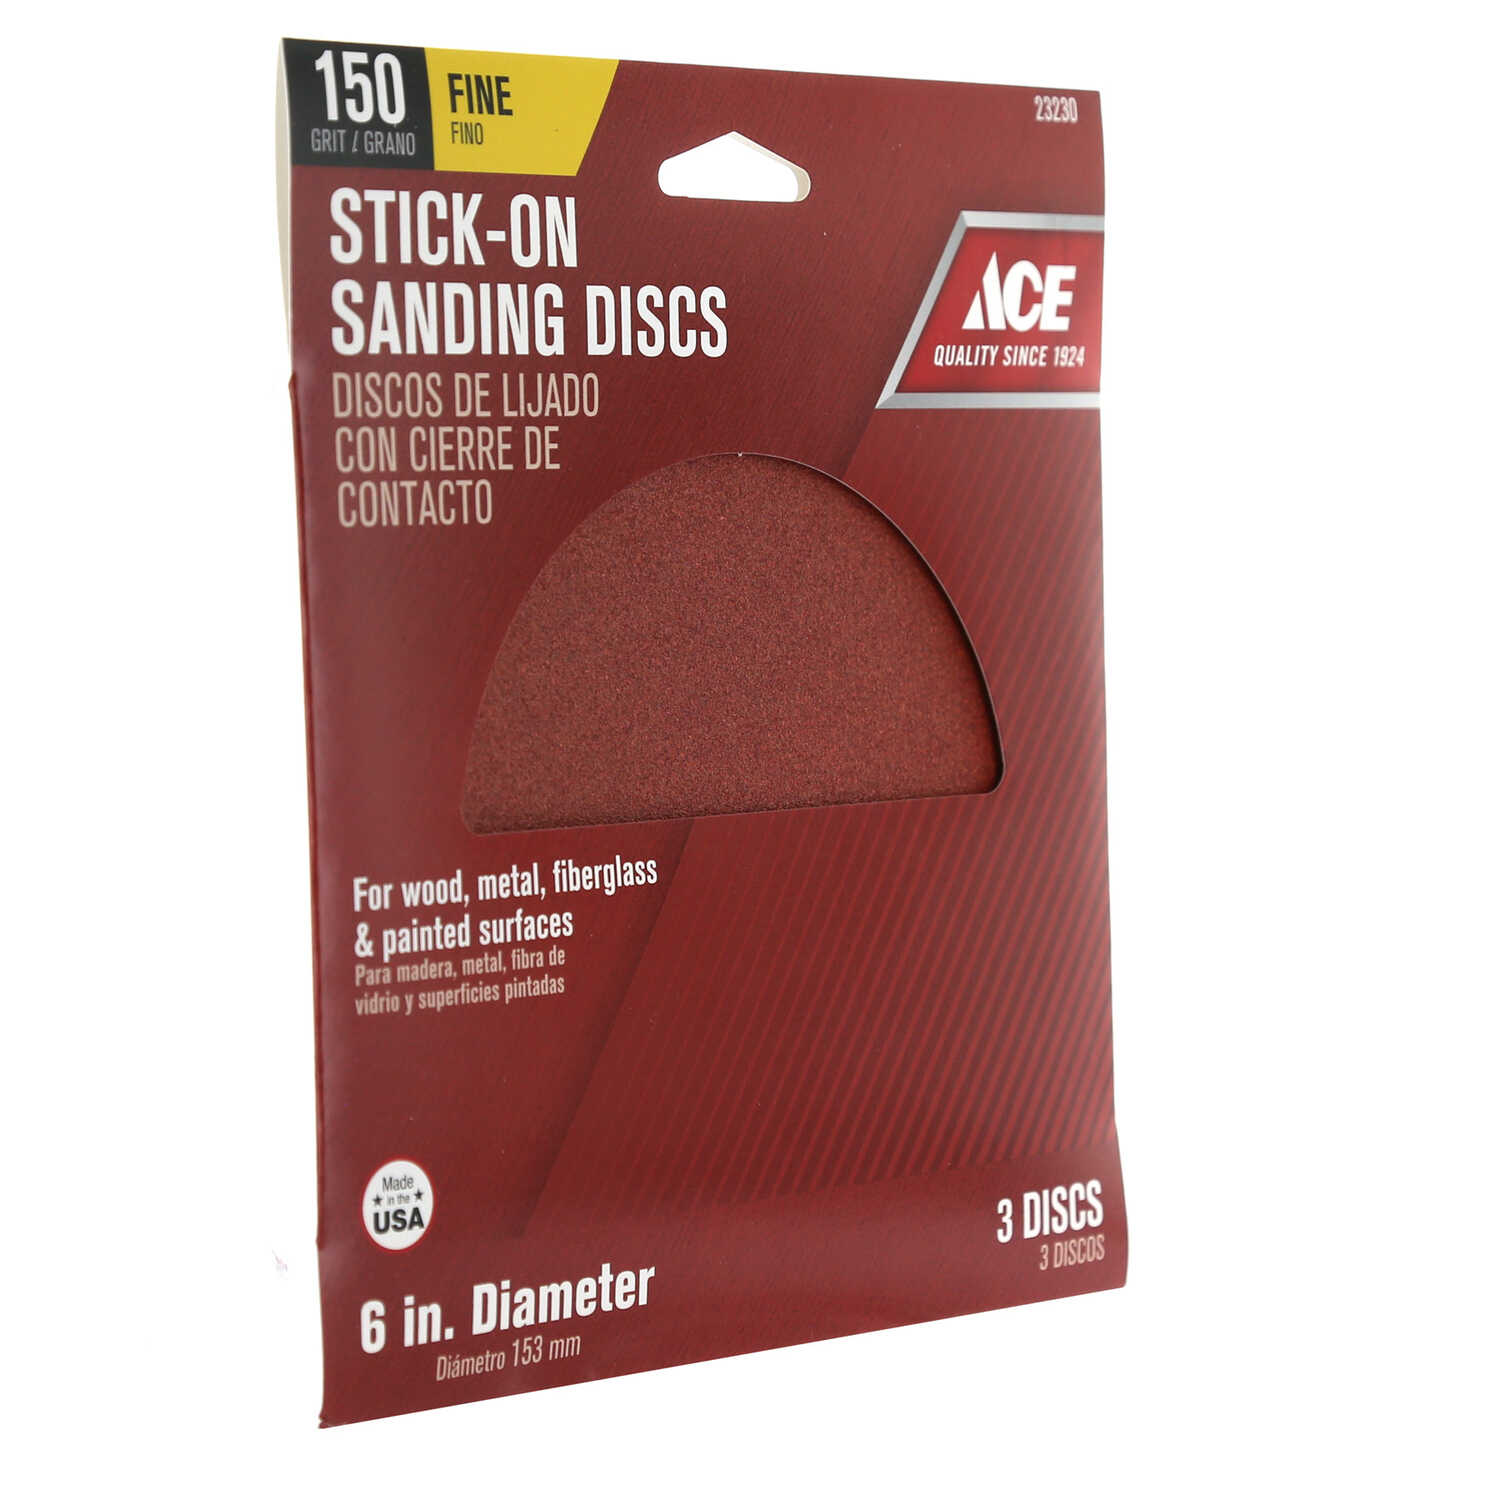 Ace  6 in. Adhesive  Sanding Disc  150 Grit 3 pk Aluminum Oxide  Fine